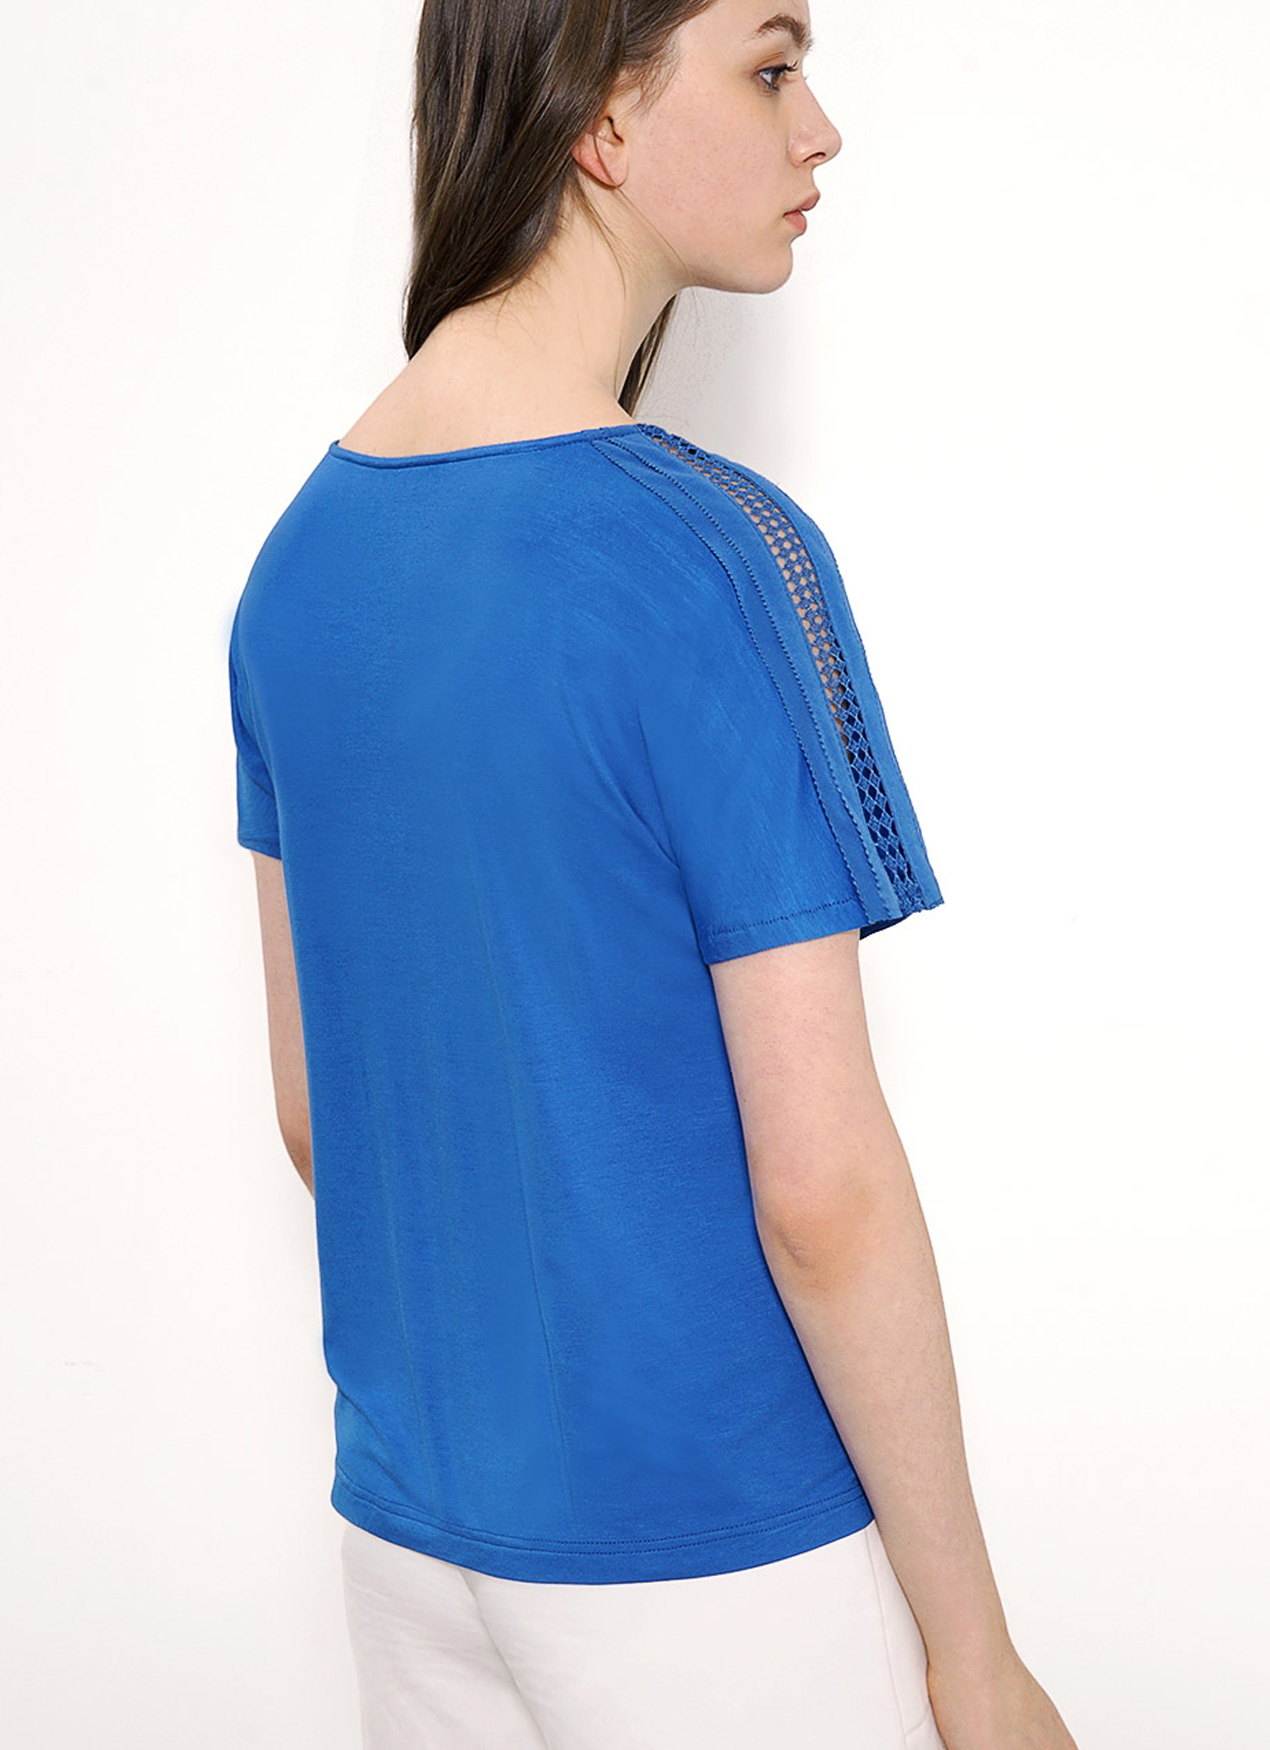 Saturday Club Blue Boat Neck T-shirt With Lace Trim